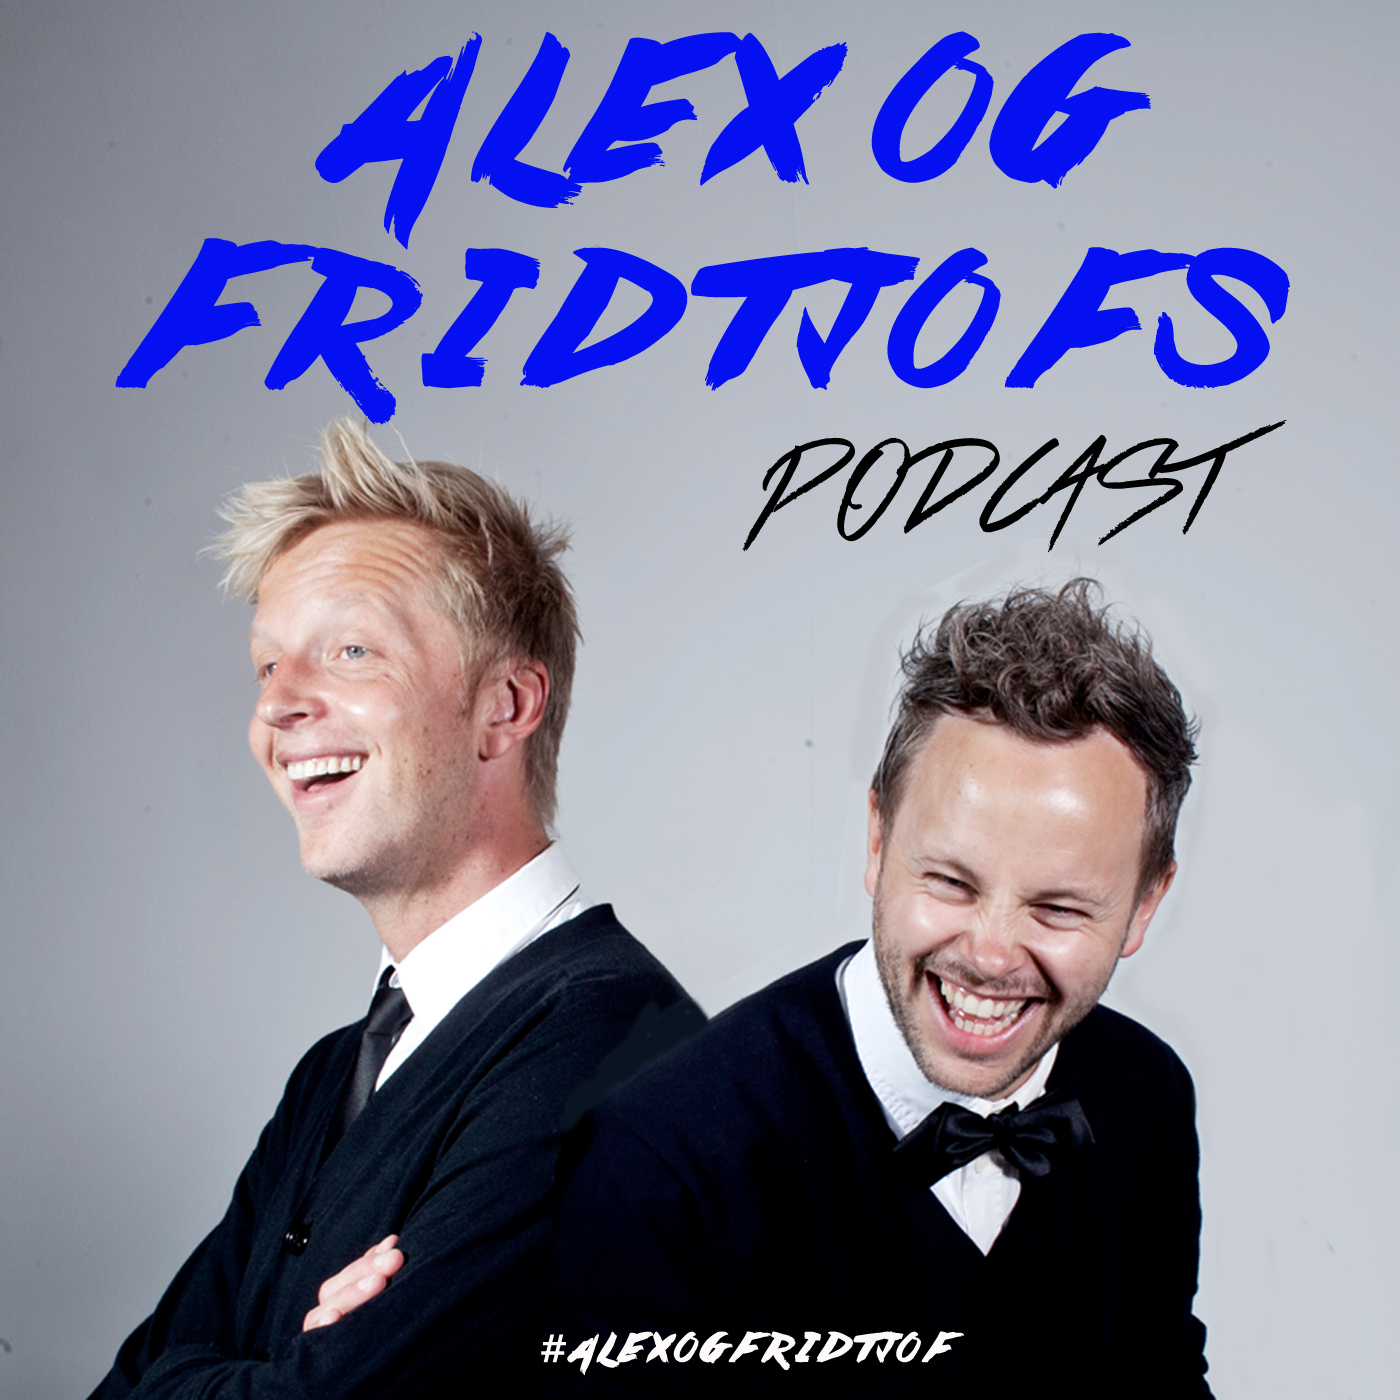 Alex og Fridtjofs podcast